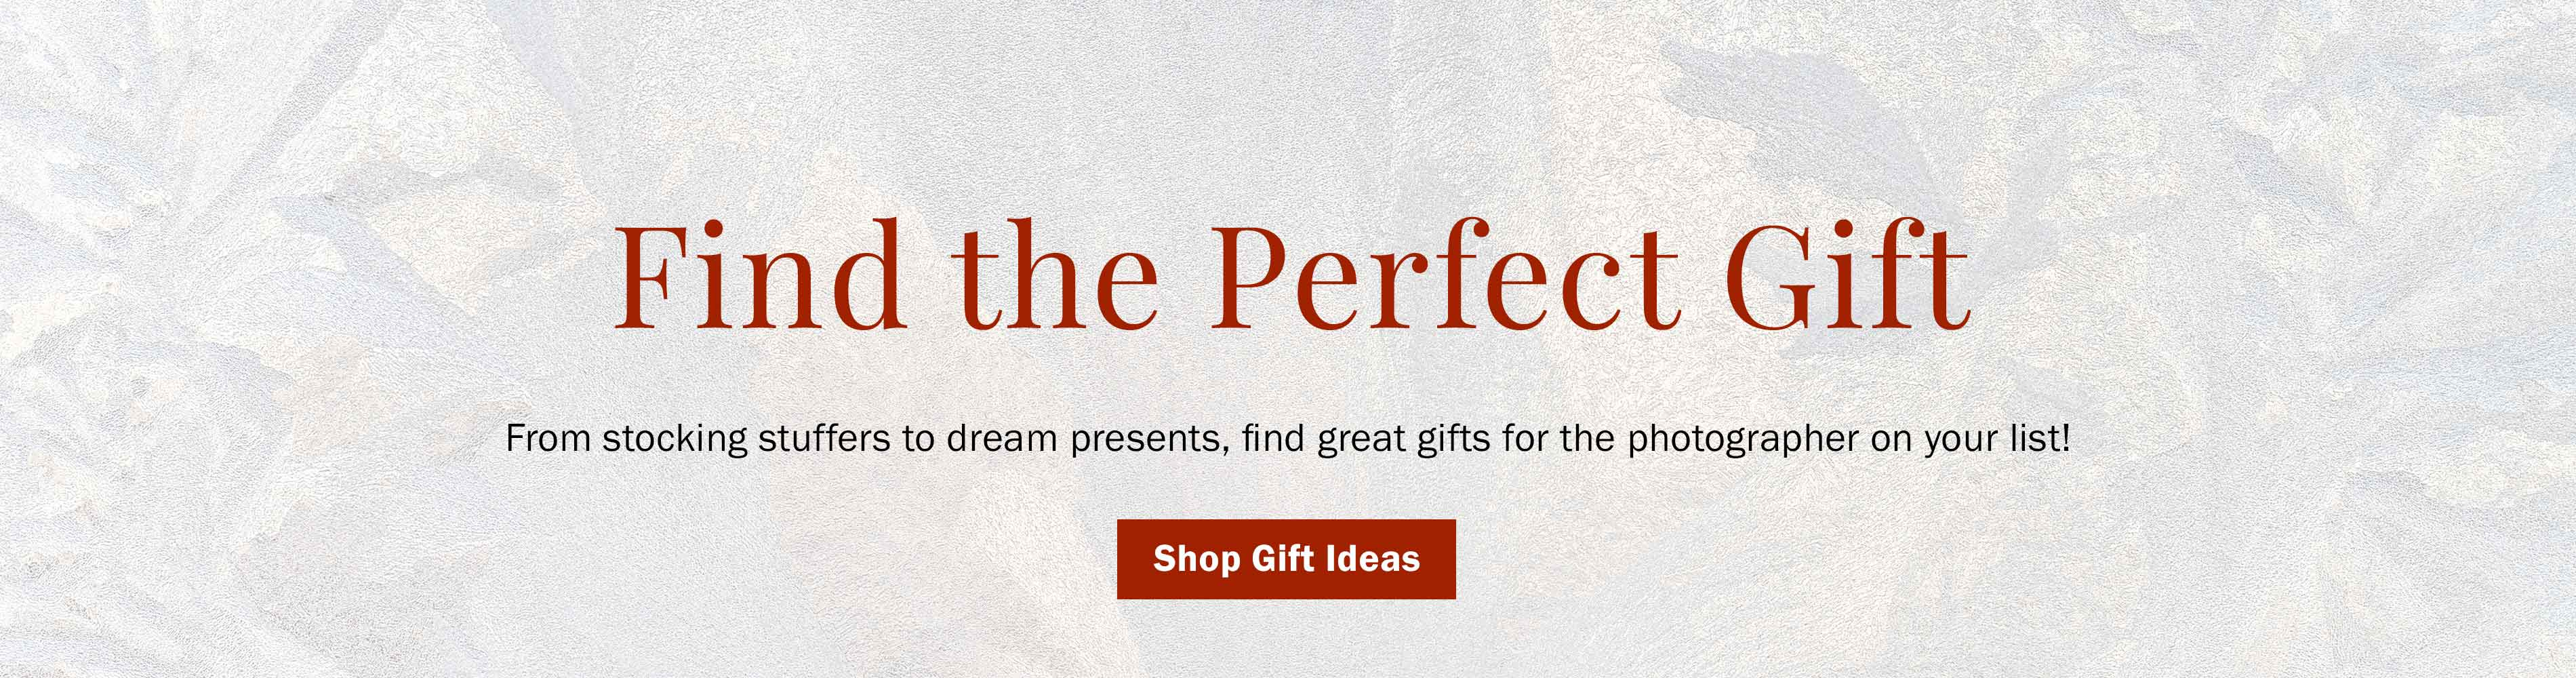 Find the Perfect Gift! From stocking stuffers to dream presents, find gifts for the photographer on your list! Shop Gift Ideas >